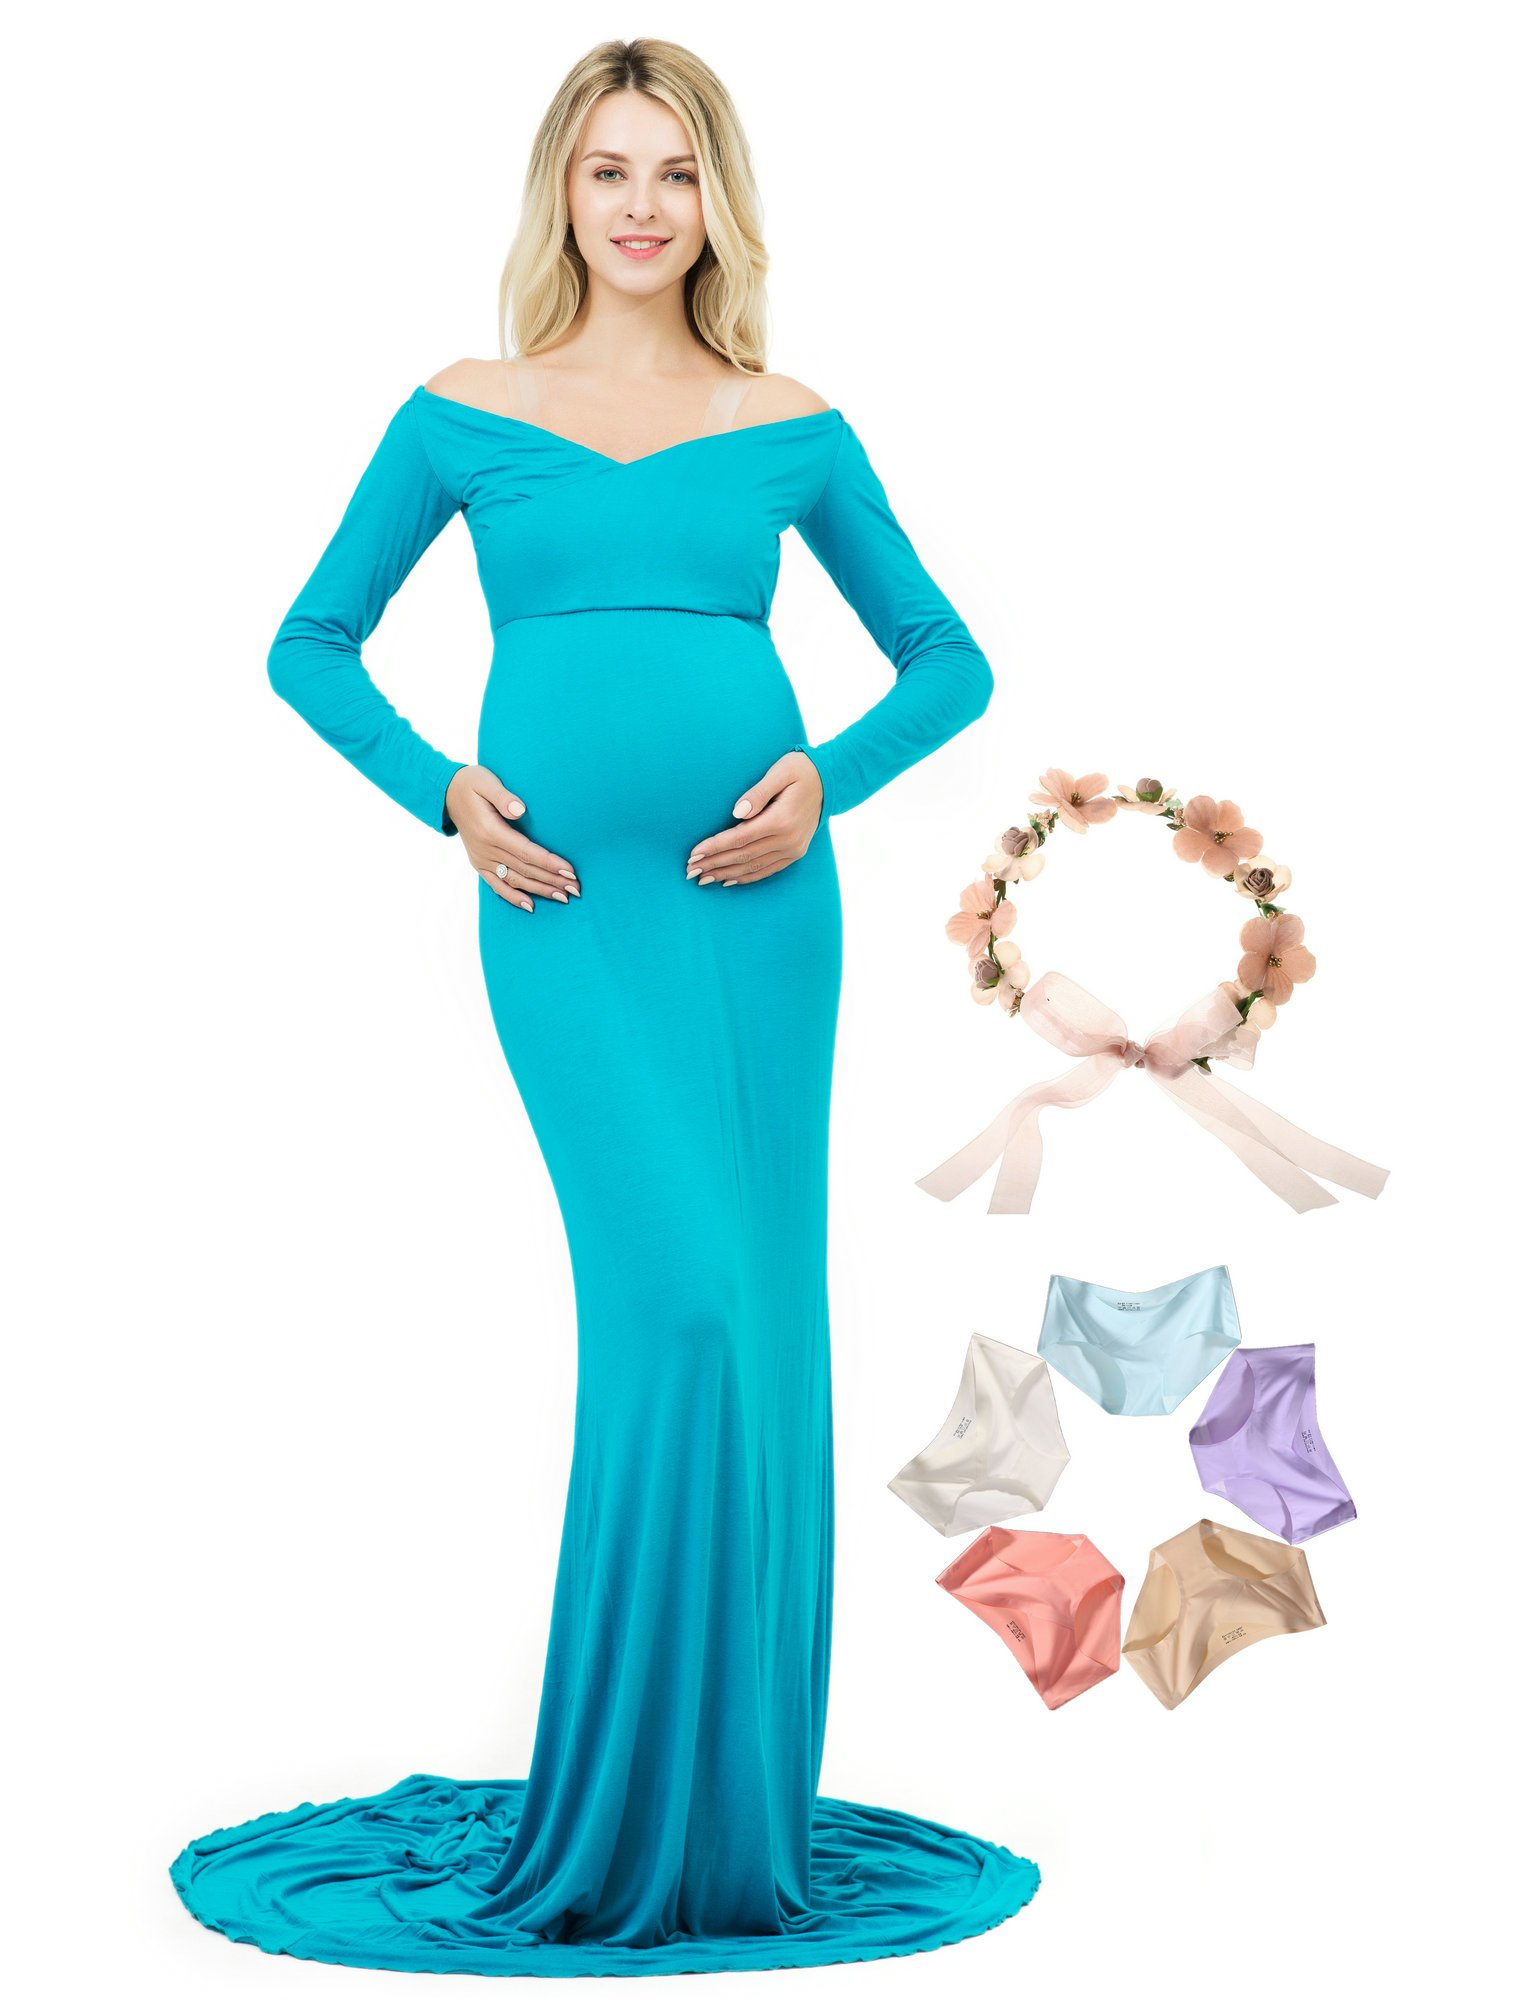 Photoshoot Maternity Dress Long Sleeve Off Shoulder V-Neck Photography Gown (Turquoise, L)